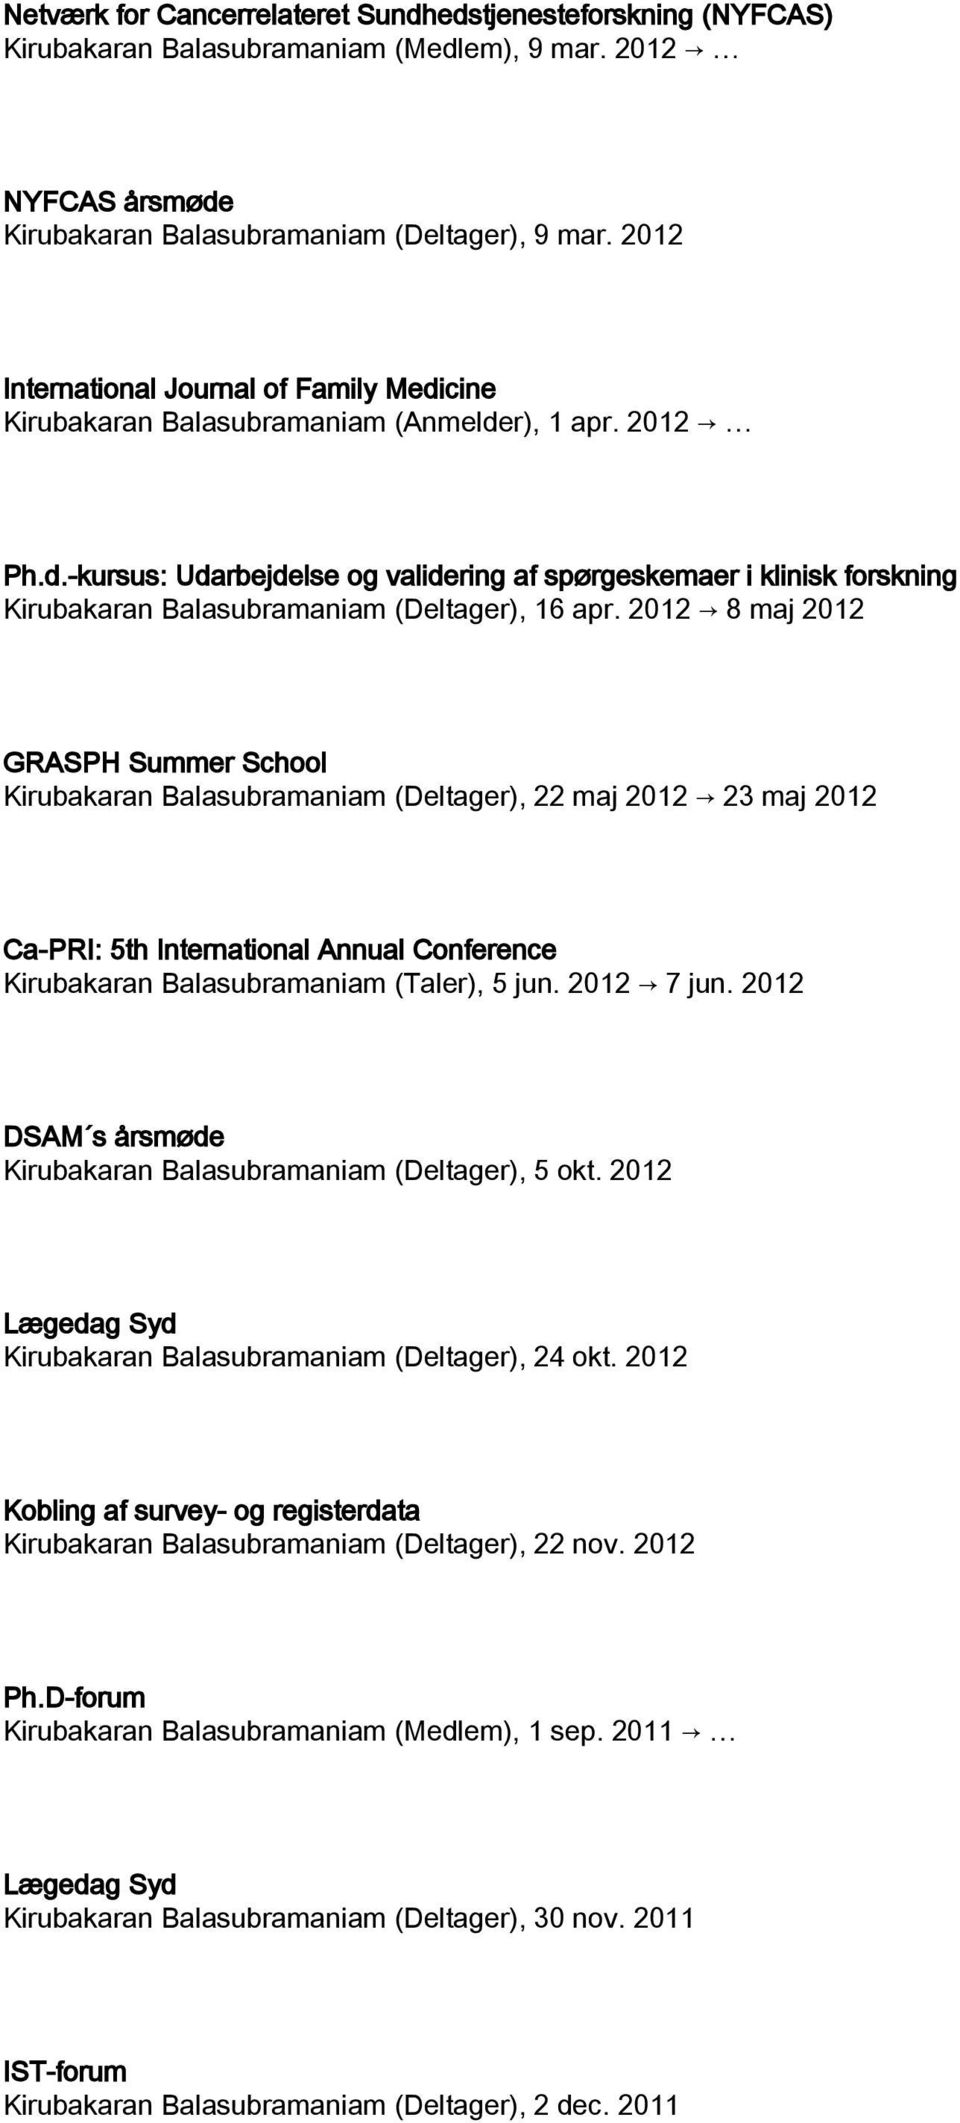 2012 8 maj 2012 GRASPH Summer School Kirubakaran Balasubramaniam (Deltager), 22 maj 2012 23 maj 2012 Ca-PRI: 5th International Annual Conference Kirubakaran Balasubramaniam (Taler), 5 jun. 2012 7 jun.